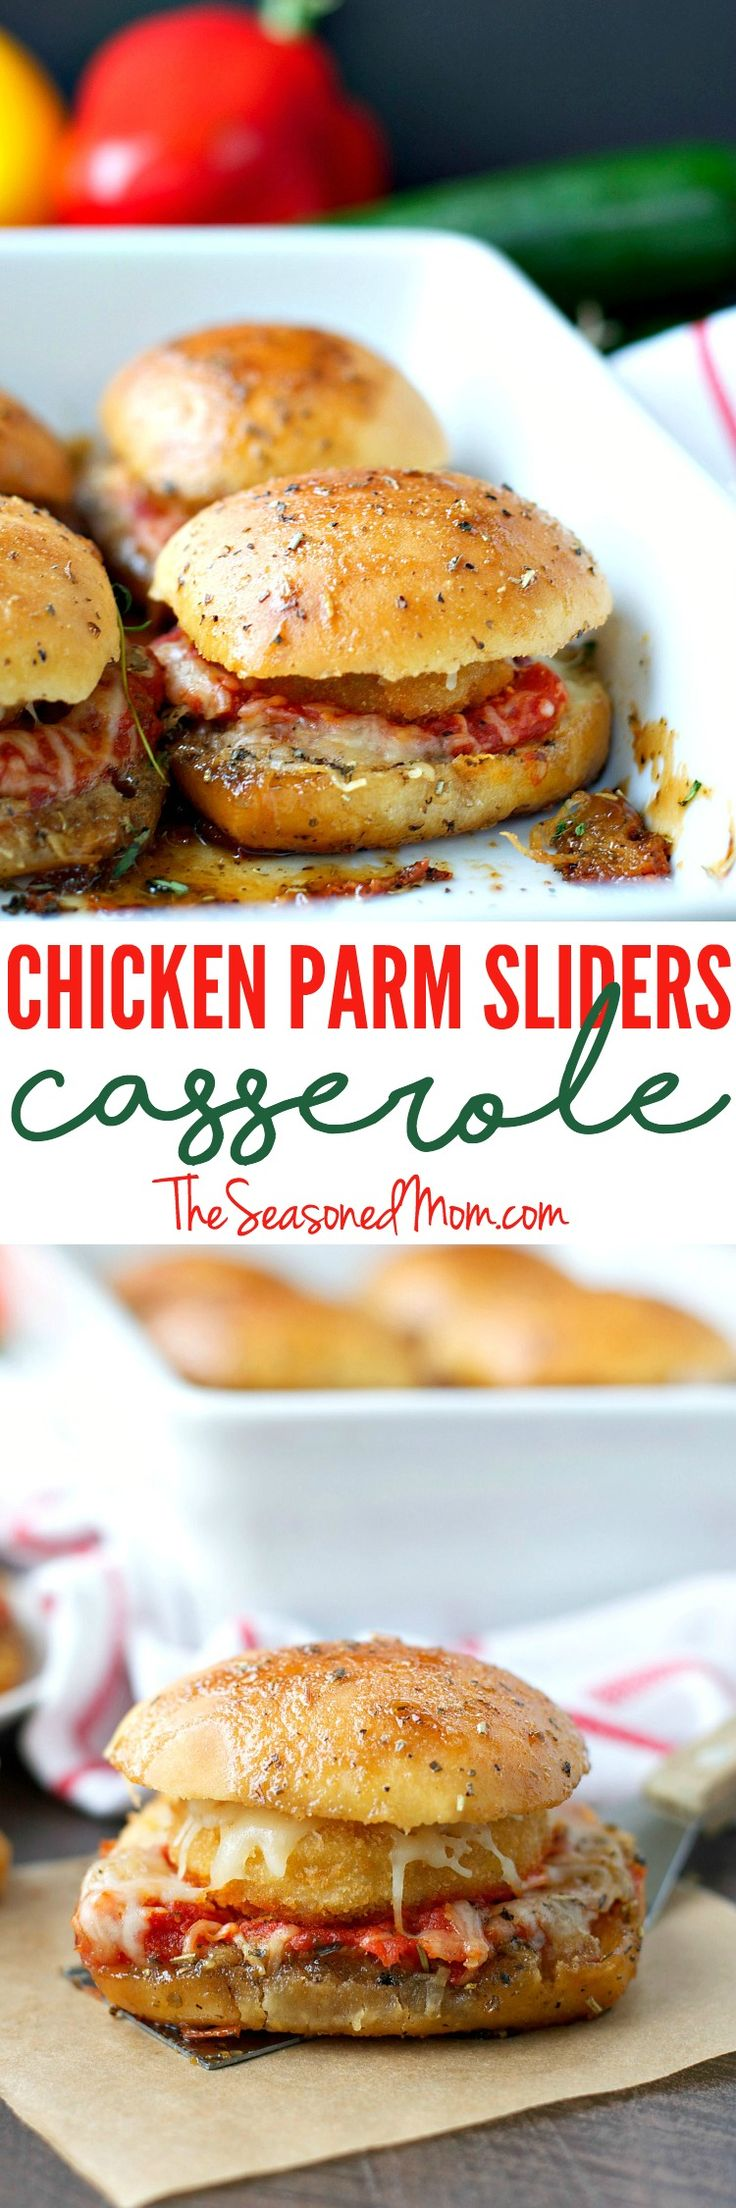 This Chicken Parmesan Sliders Casserole is a quick and easy family-friendly weeknight dinner or a perfect make-ahead party dish! No one can resist the crispy breaded chicken tucked inside sweet dinner rolls and covered in cheese and Italian butter sauce! #ad